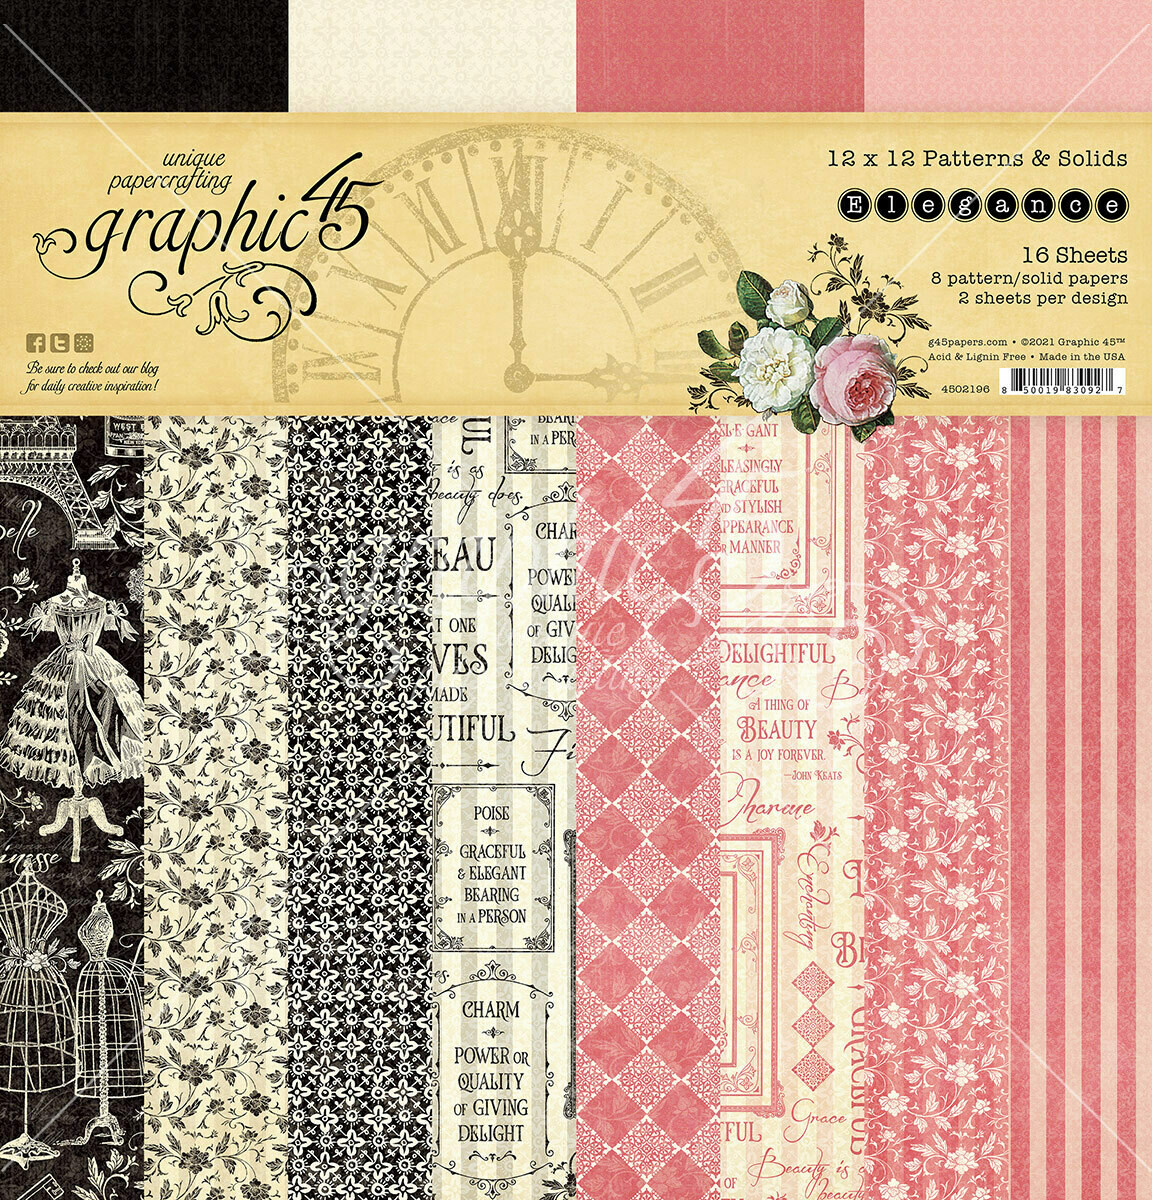 Elegance 12x12 Patterns and Solids - Graphic 45